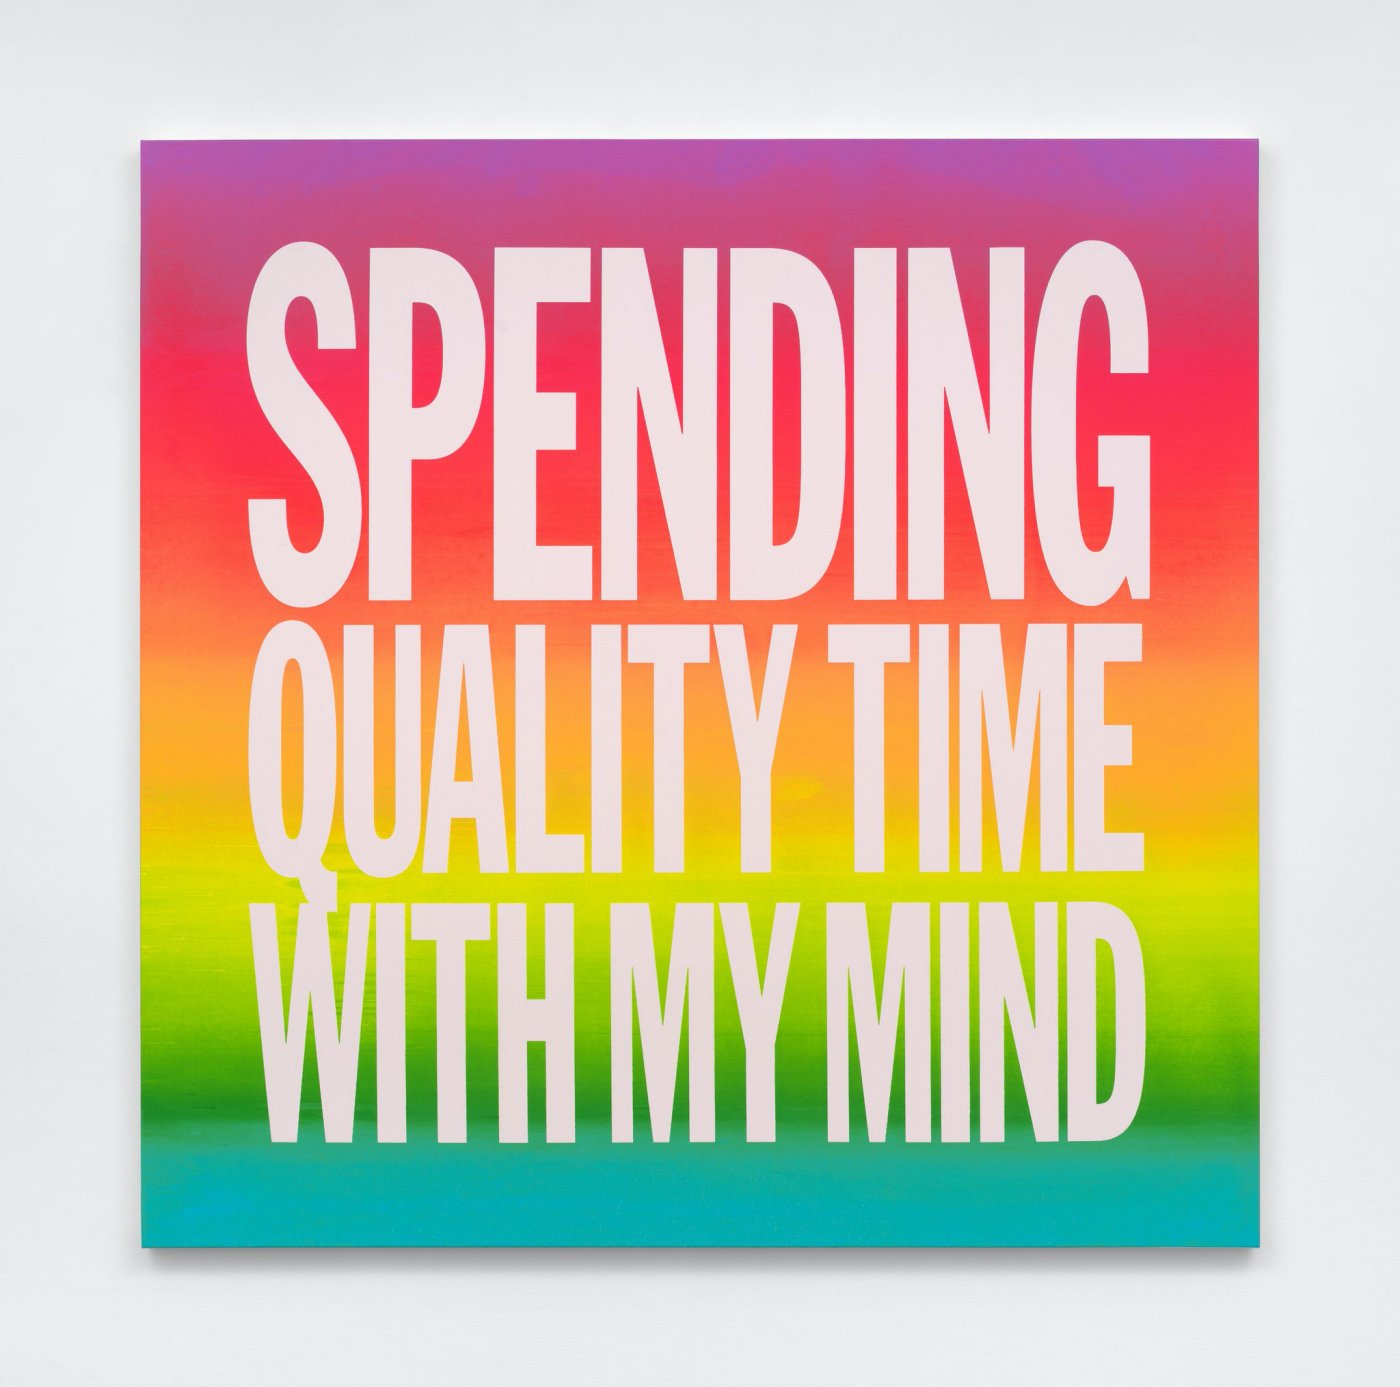 SPENDING QUALITY TIME WITH  MY MIND